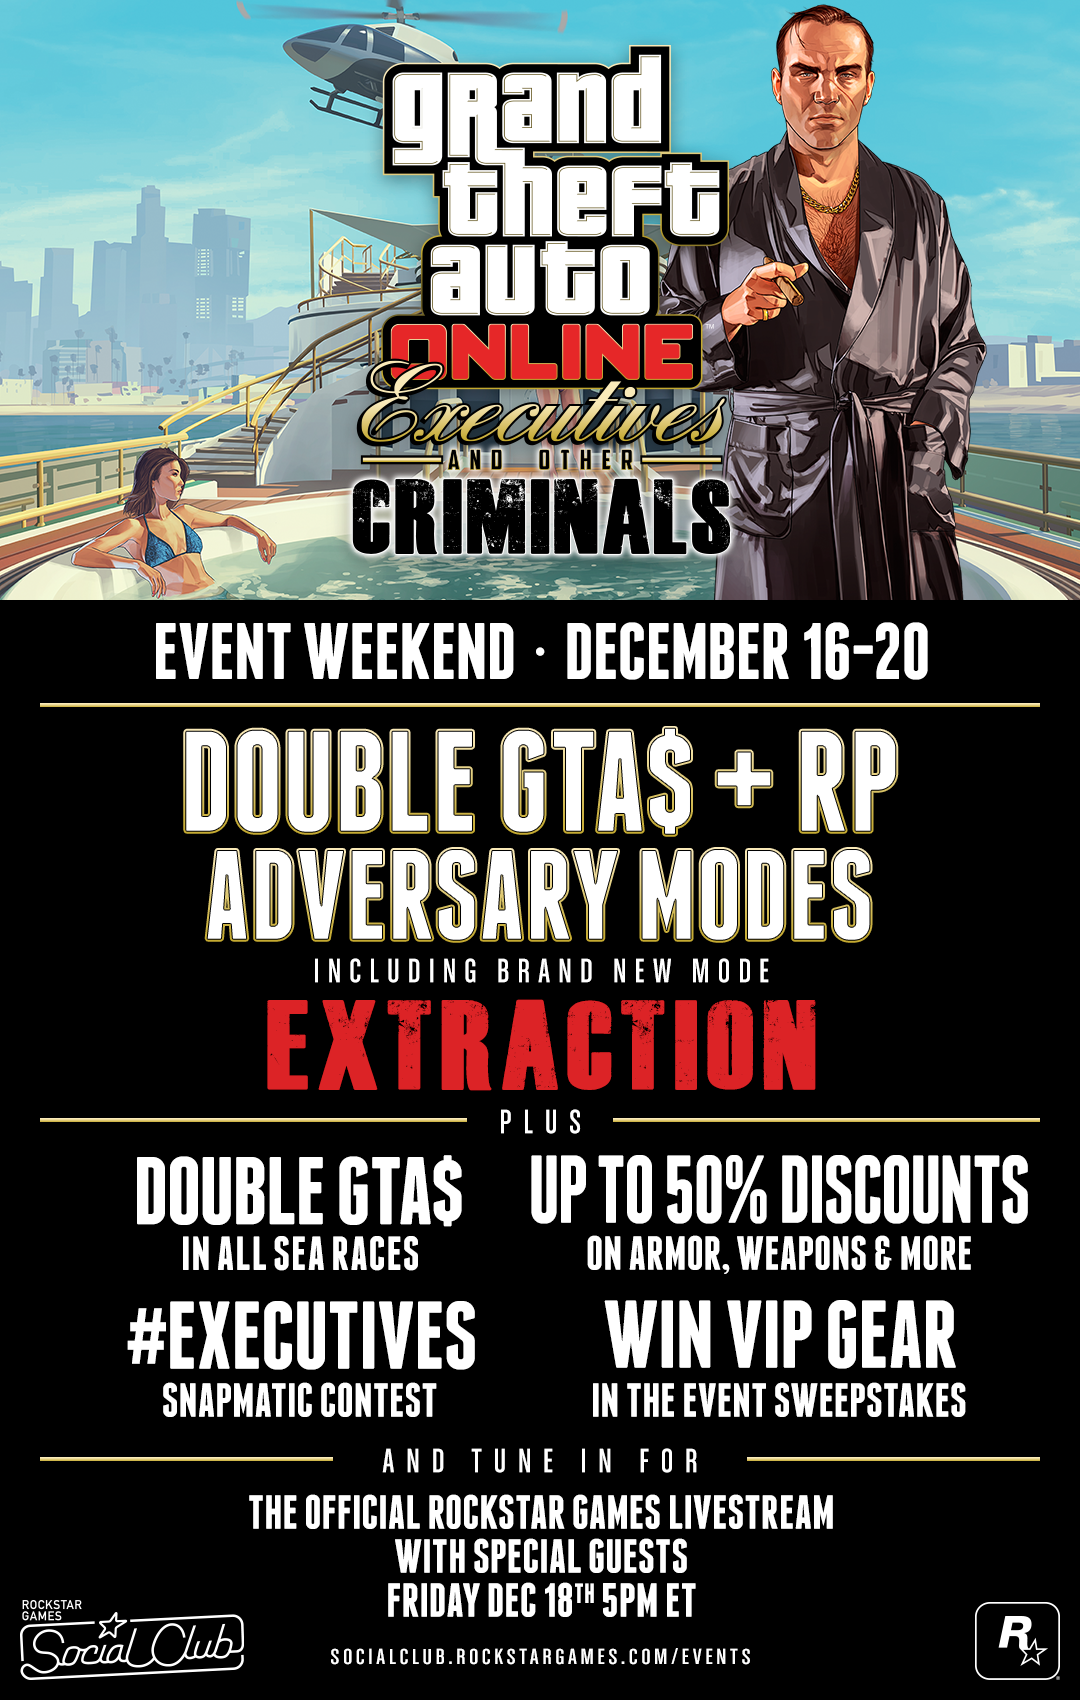 Executives & Other Criminals Event Weekend